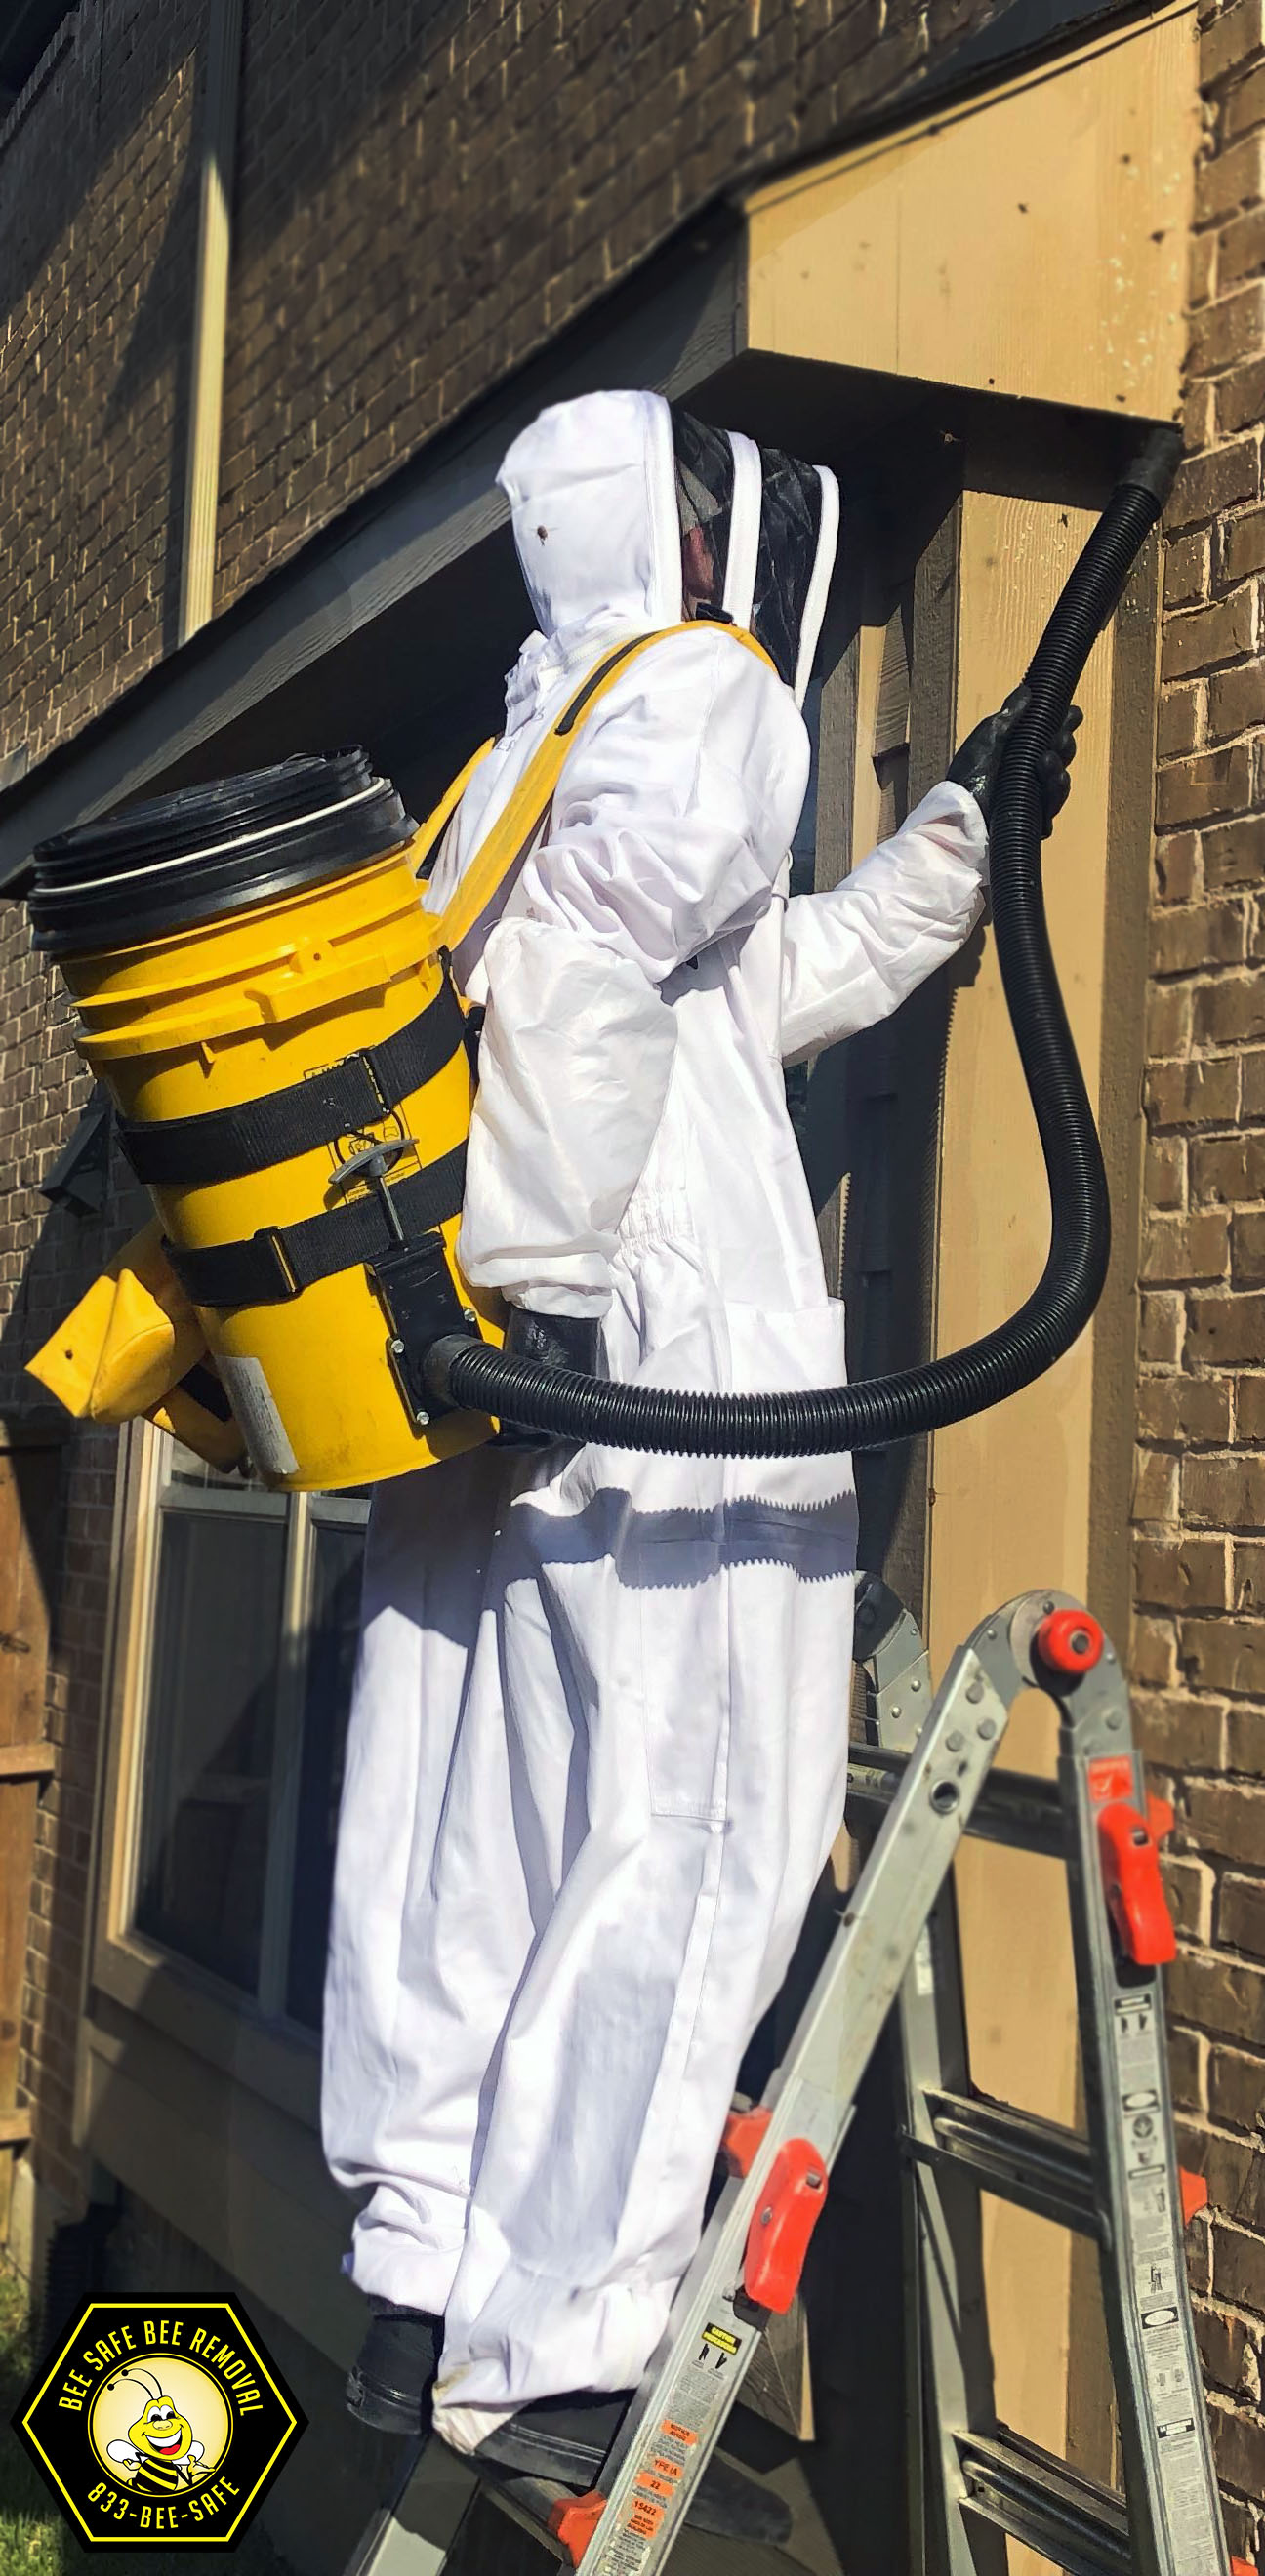 Beekeeper removing bees from Frisco home